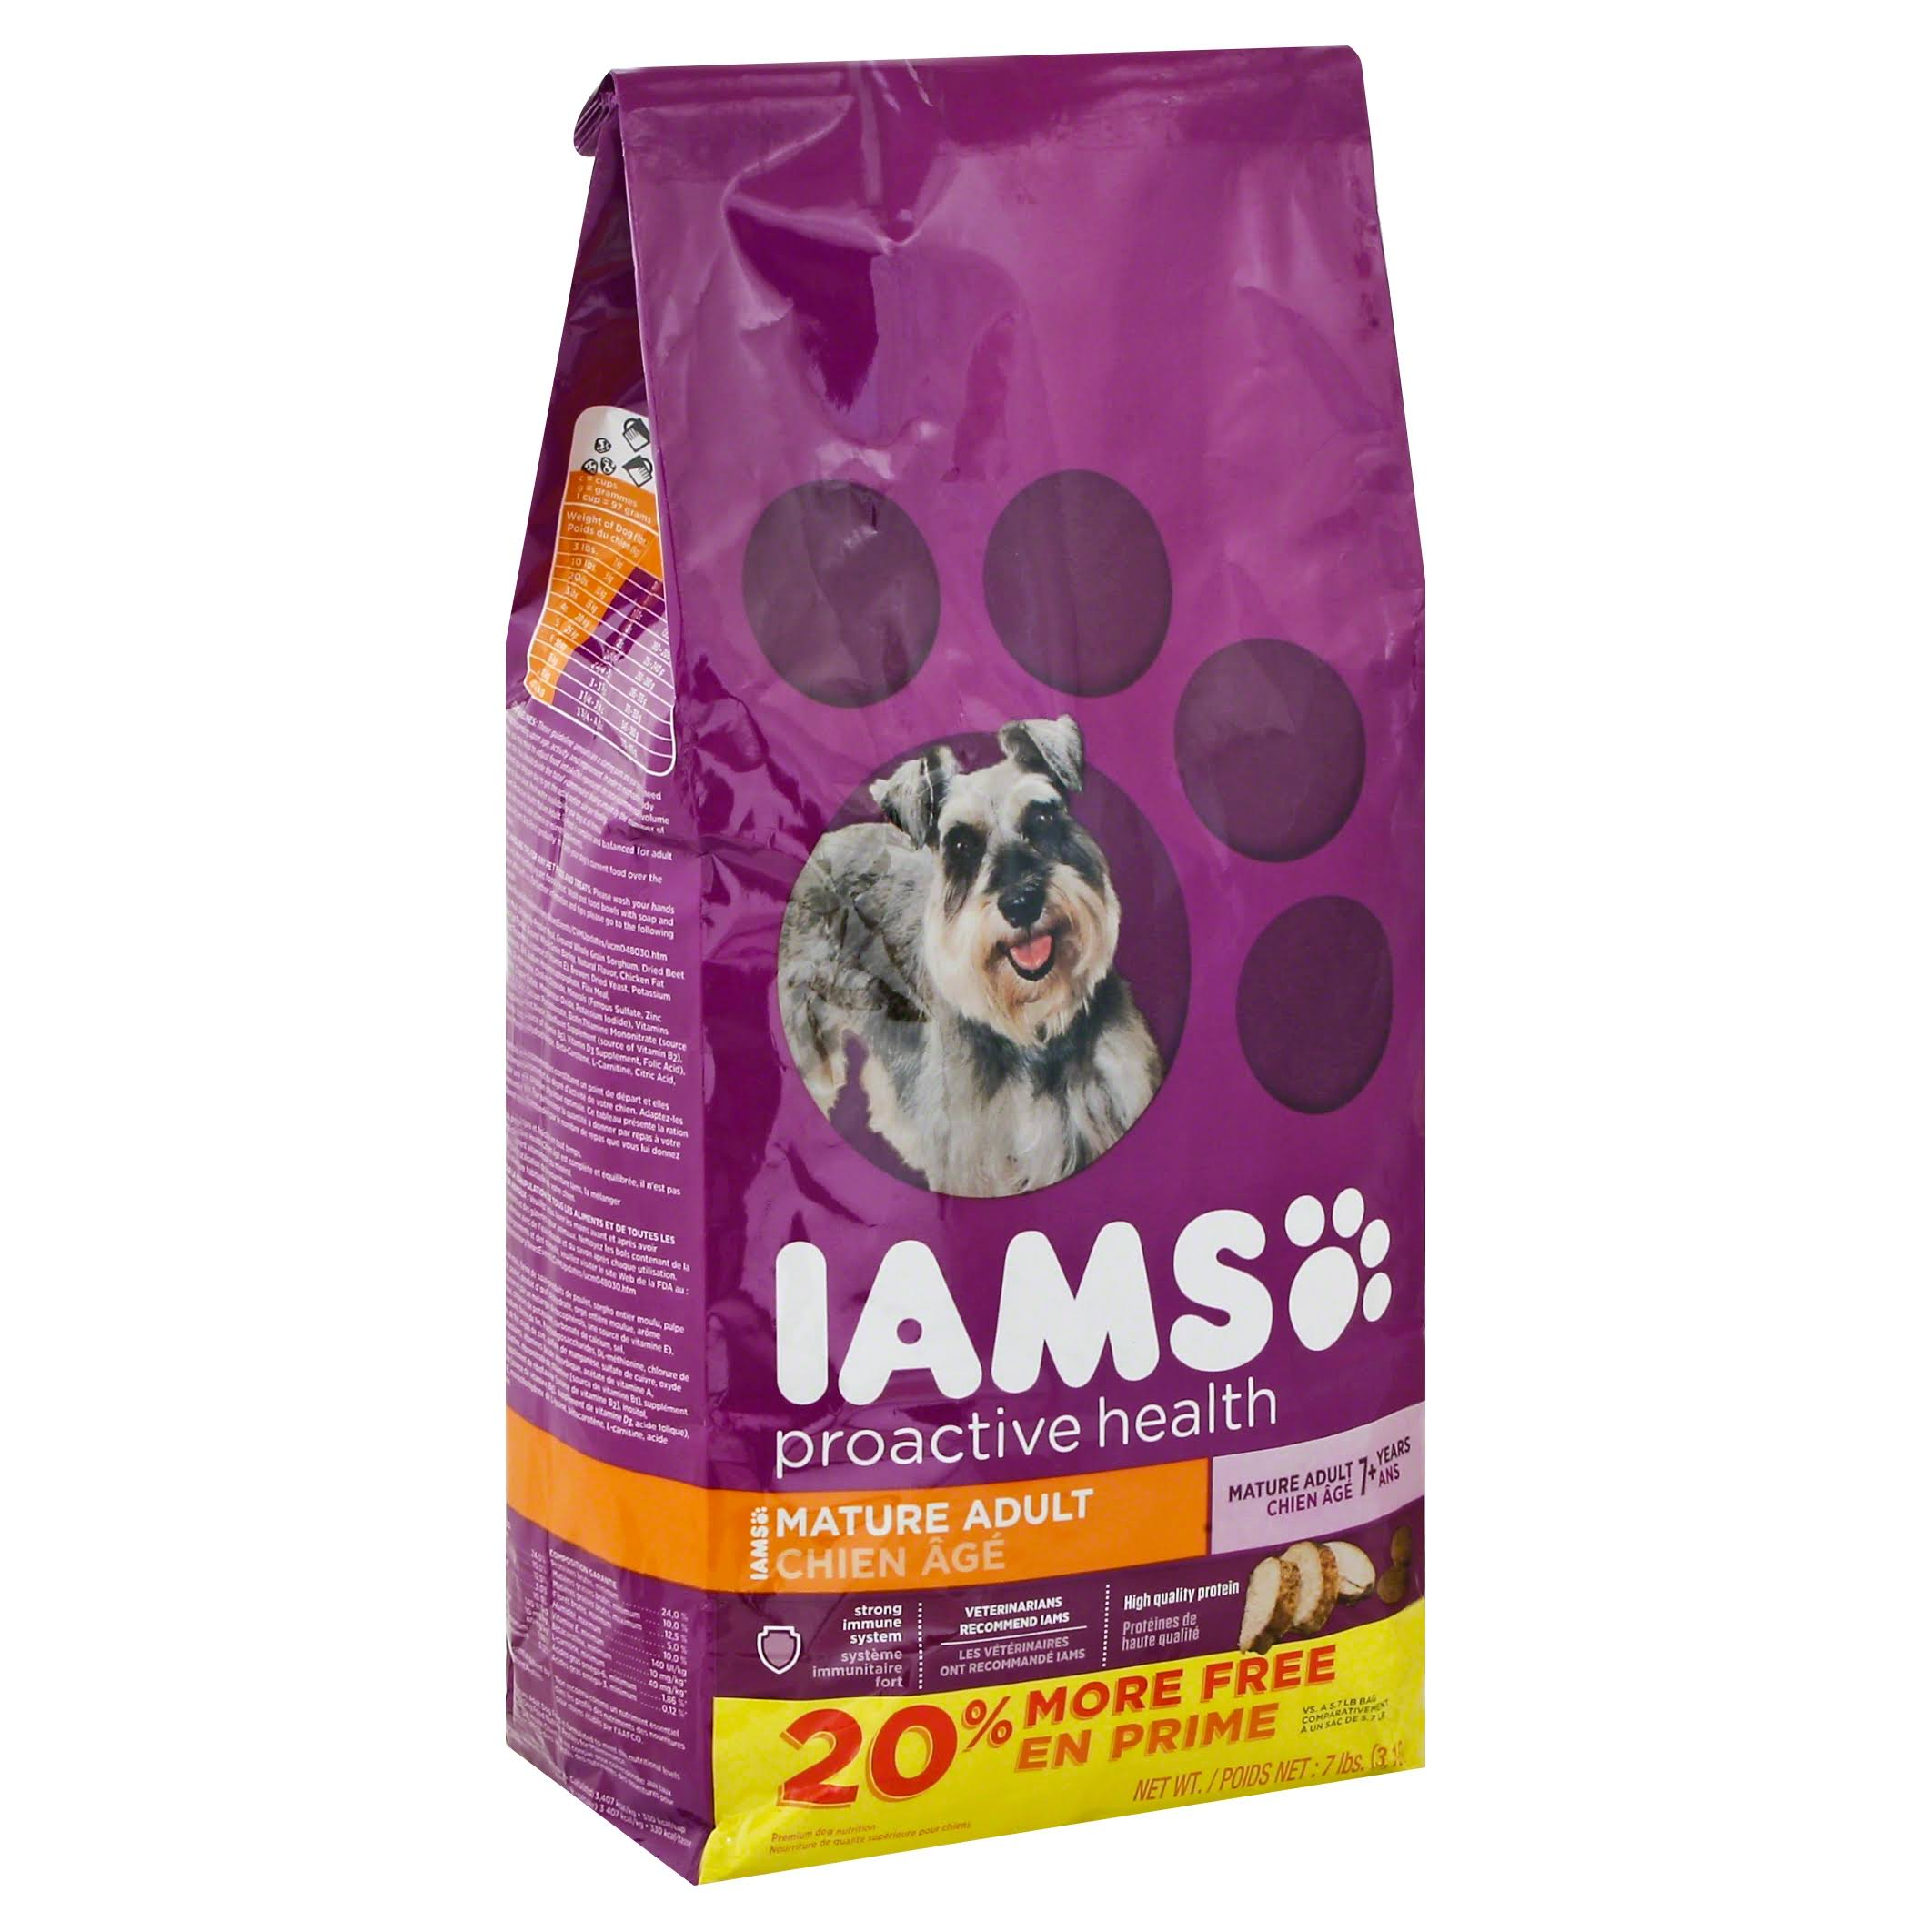 IAMS Proactive Health Senior and Mature Adult Dry Dog Food - 7lb